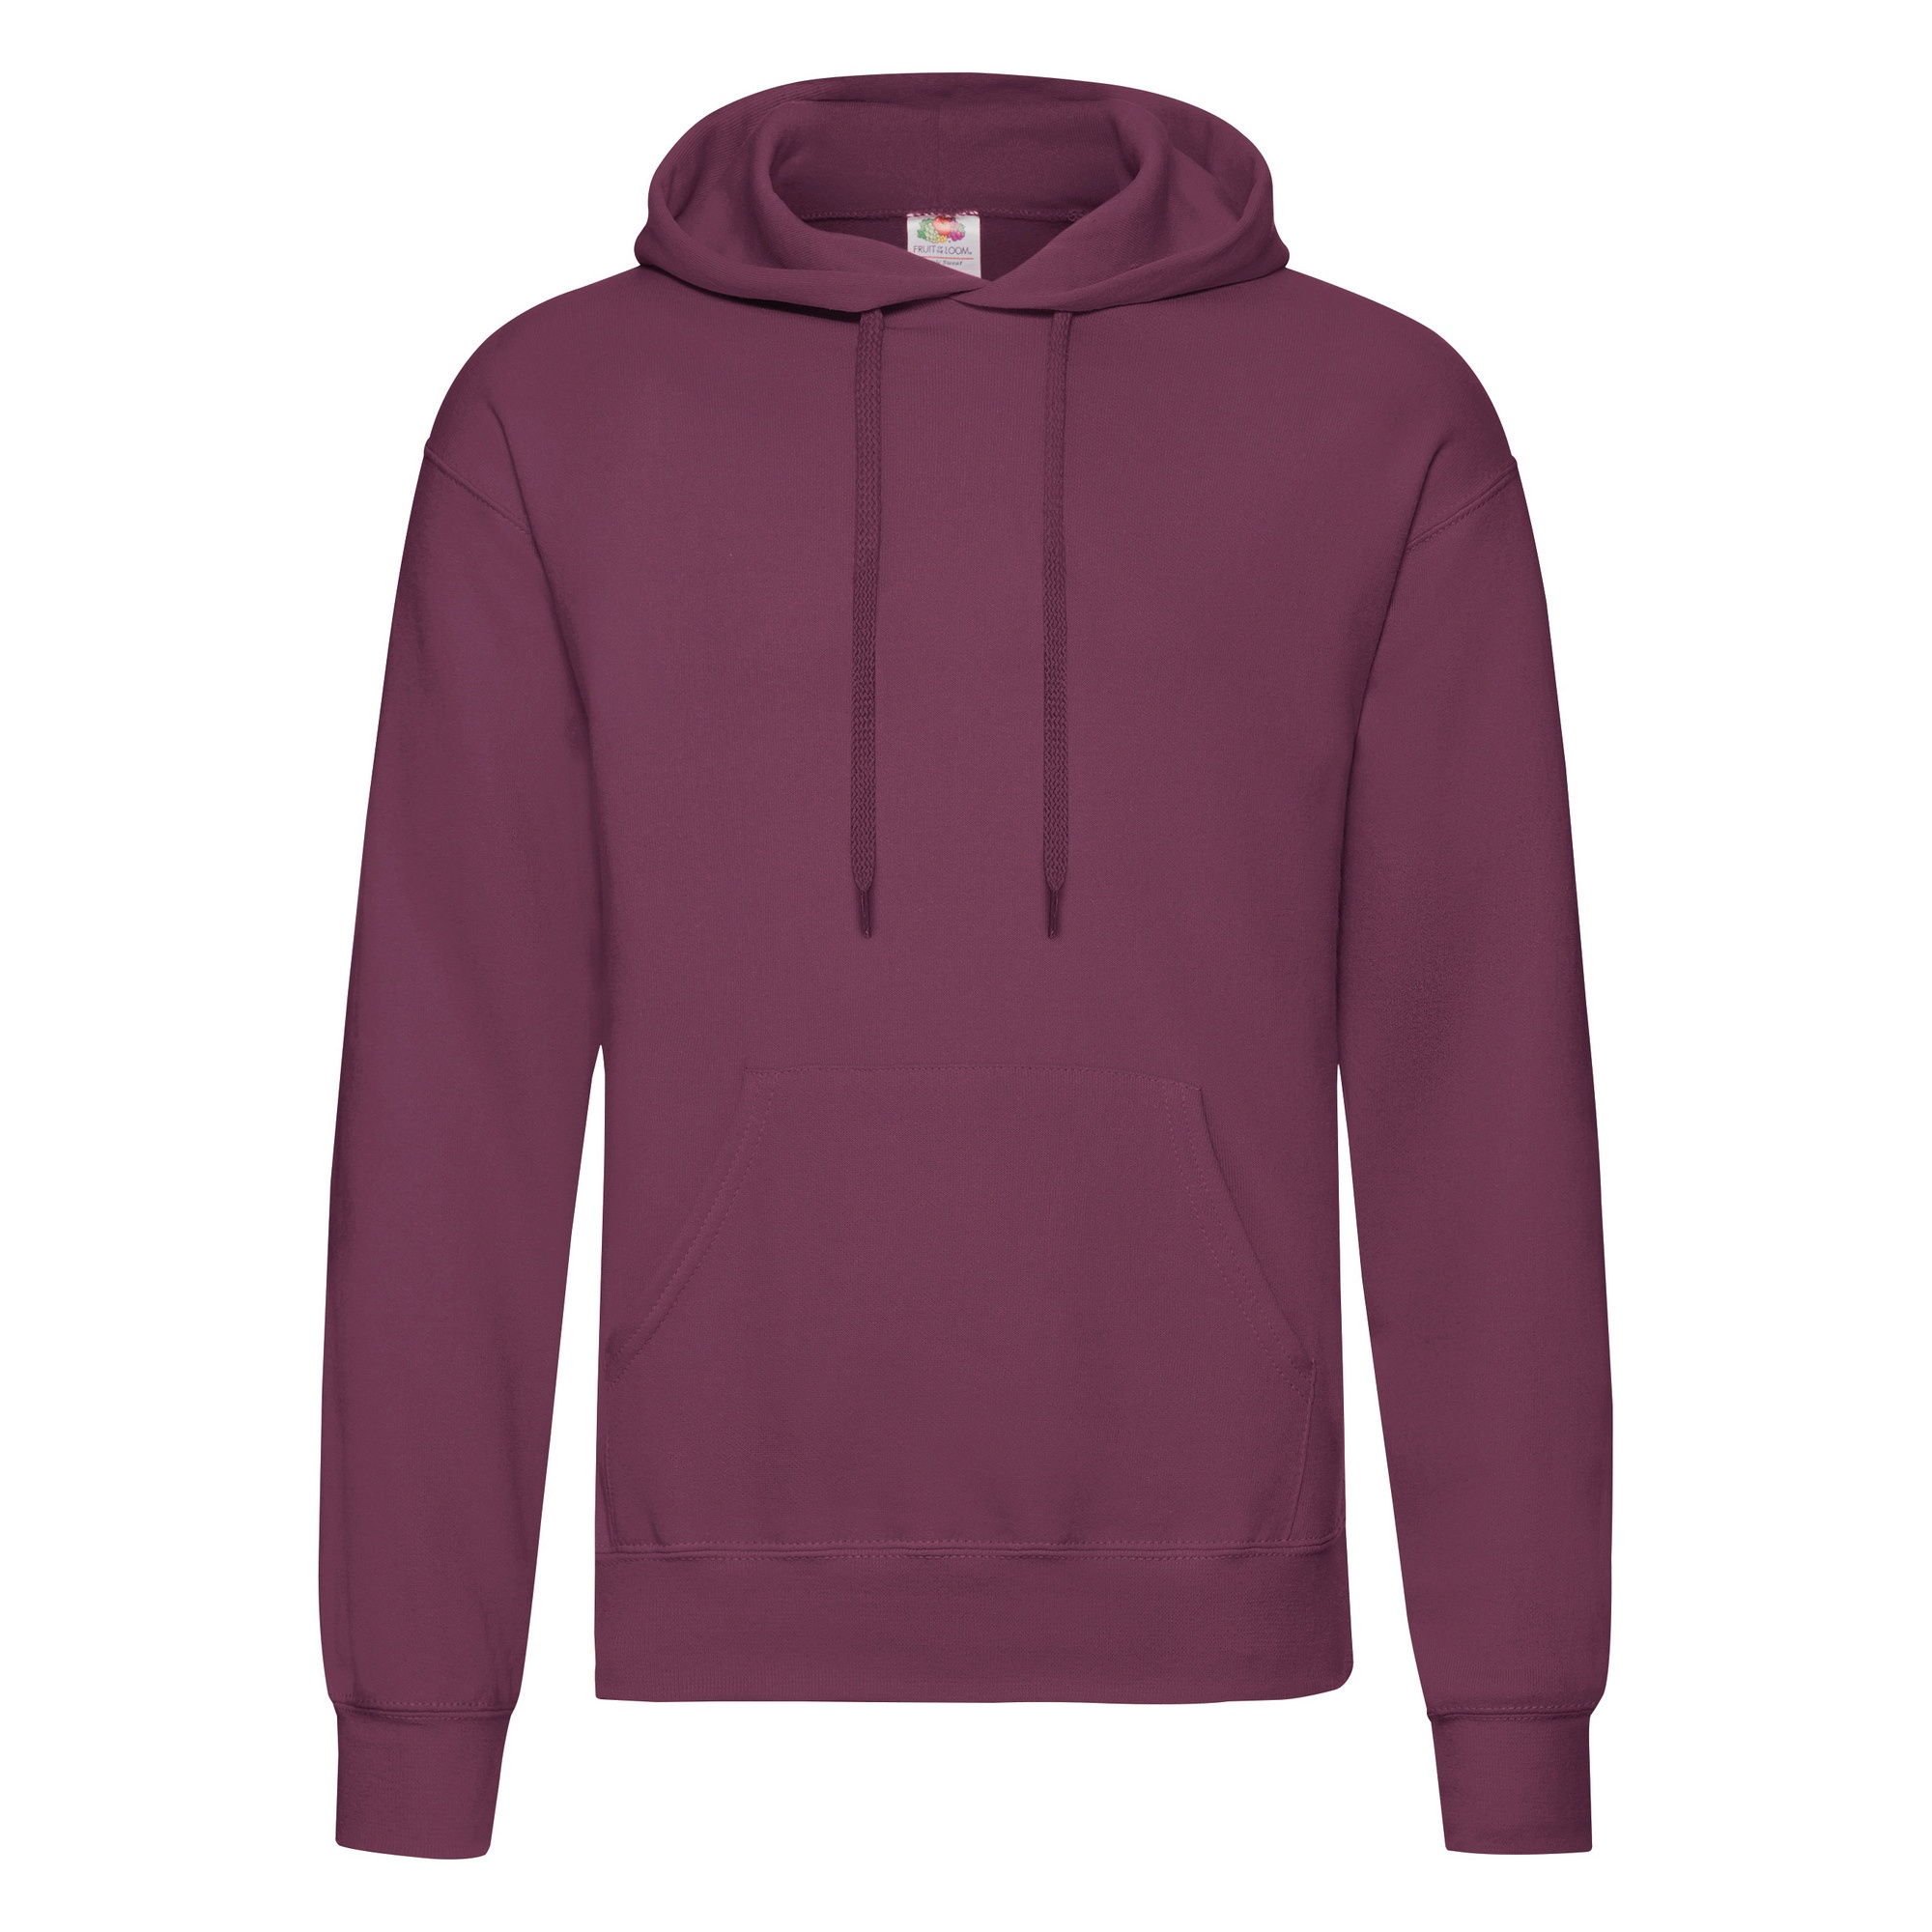 fruit of the loom mens hooded sweatshirt hoodie ebay. Black Bedroom Furniture Sets. Home Design Ideas